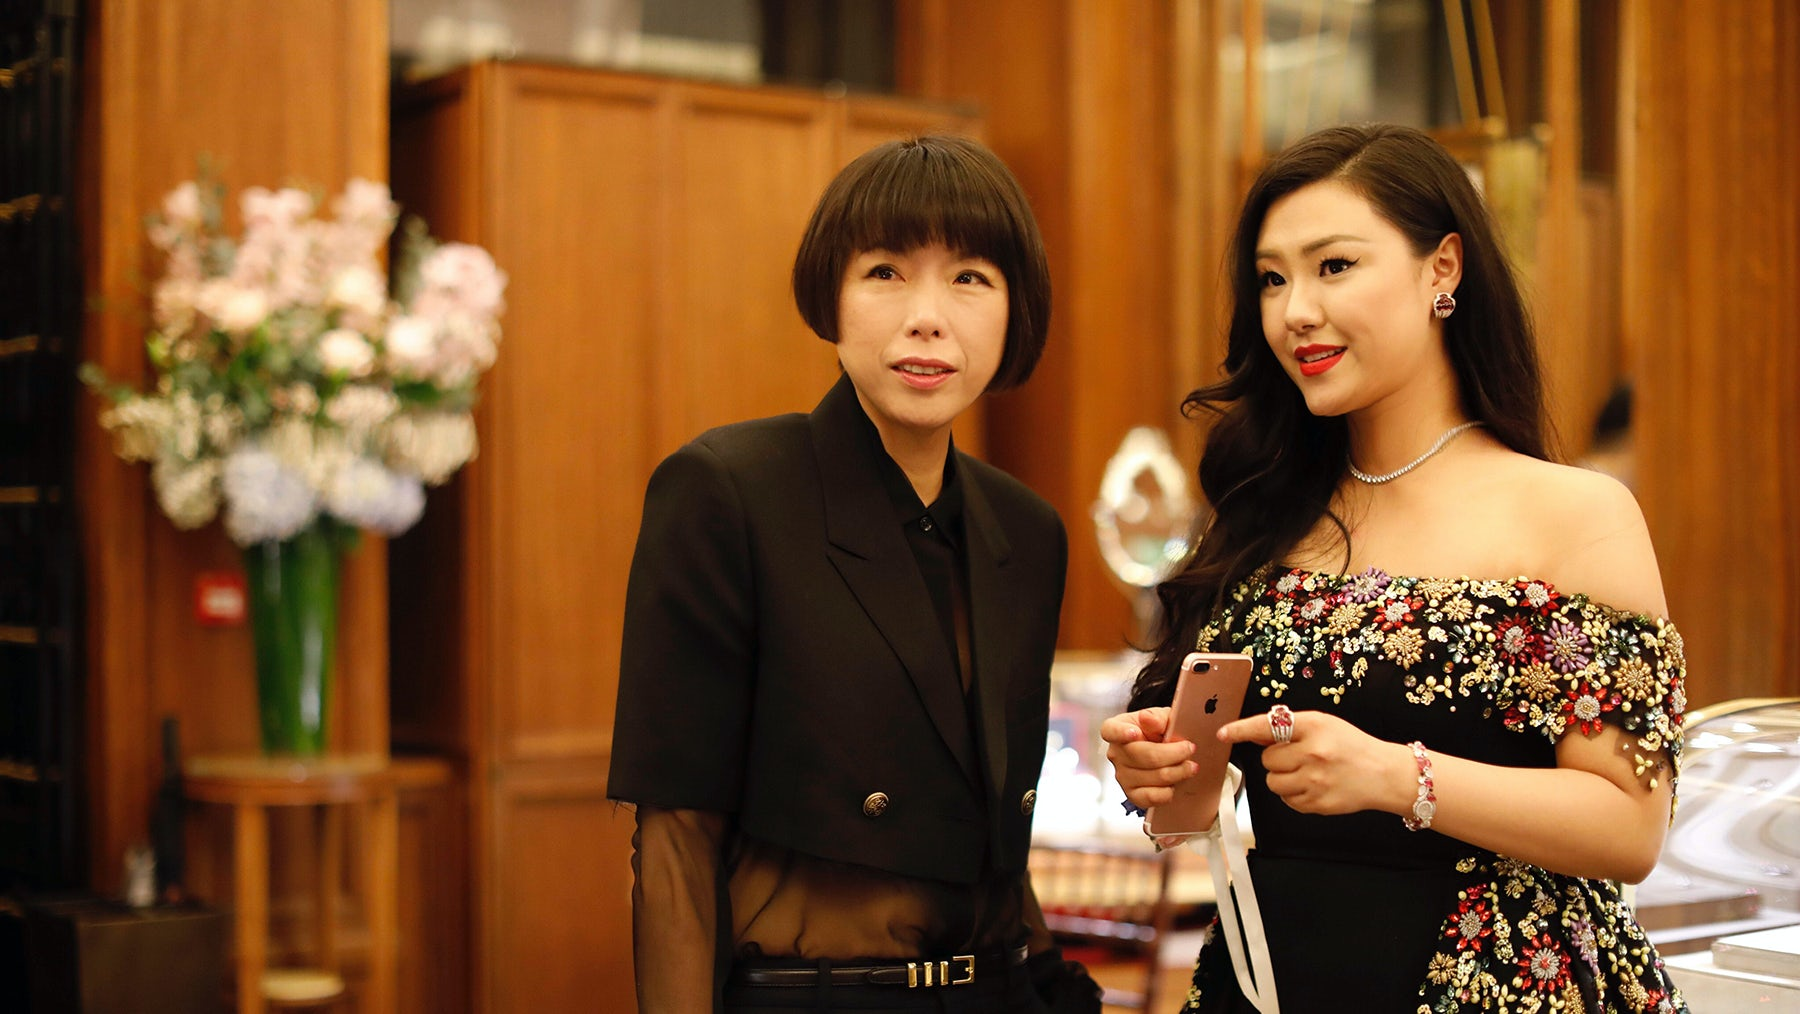 From left: Vogue China's editor-in-chief Angelica Cheung and Diana Lu Wang | Source: Diana Lu Wang